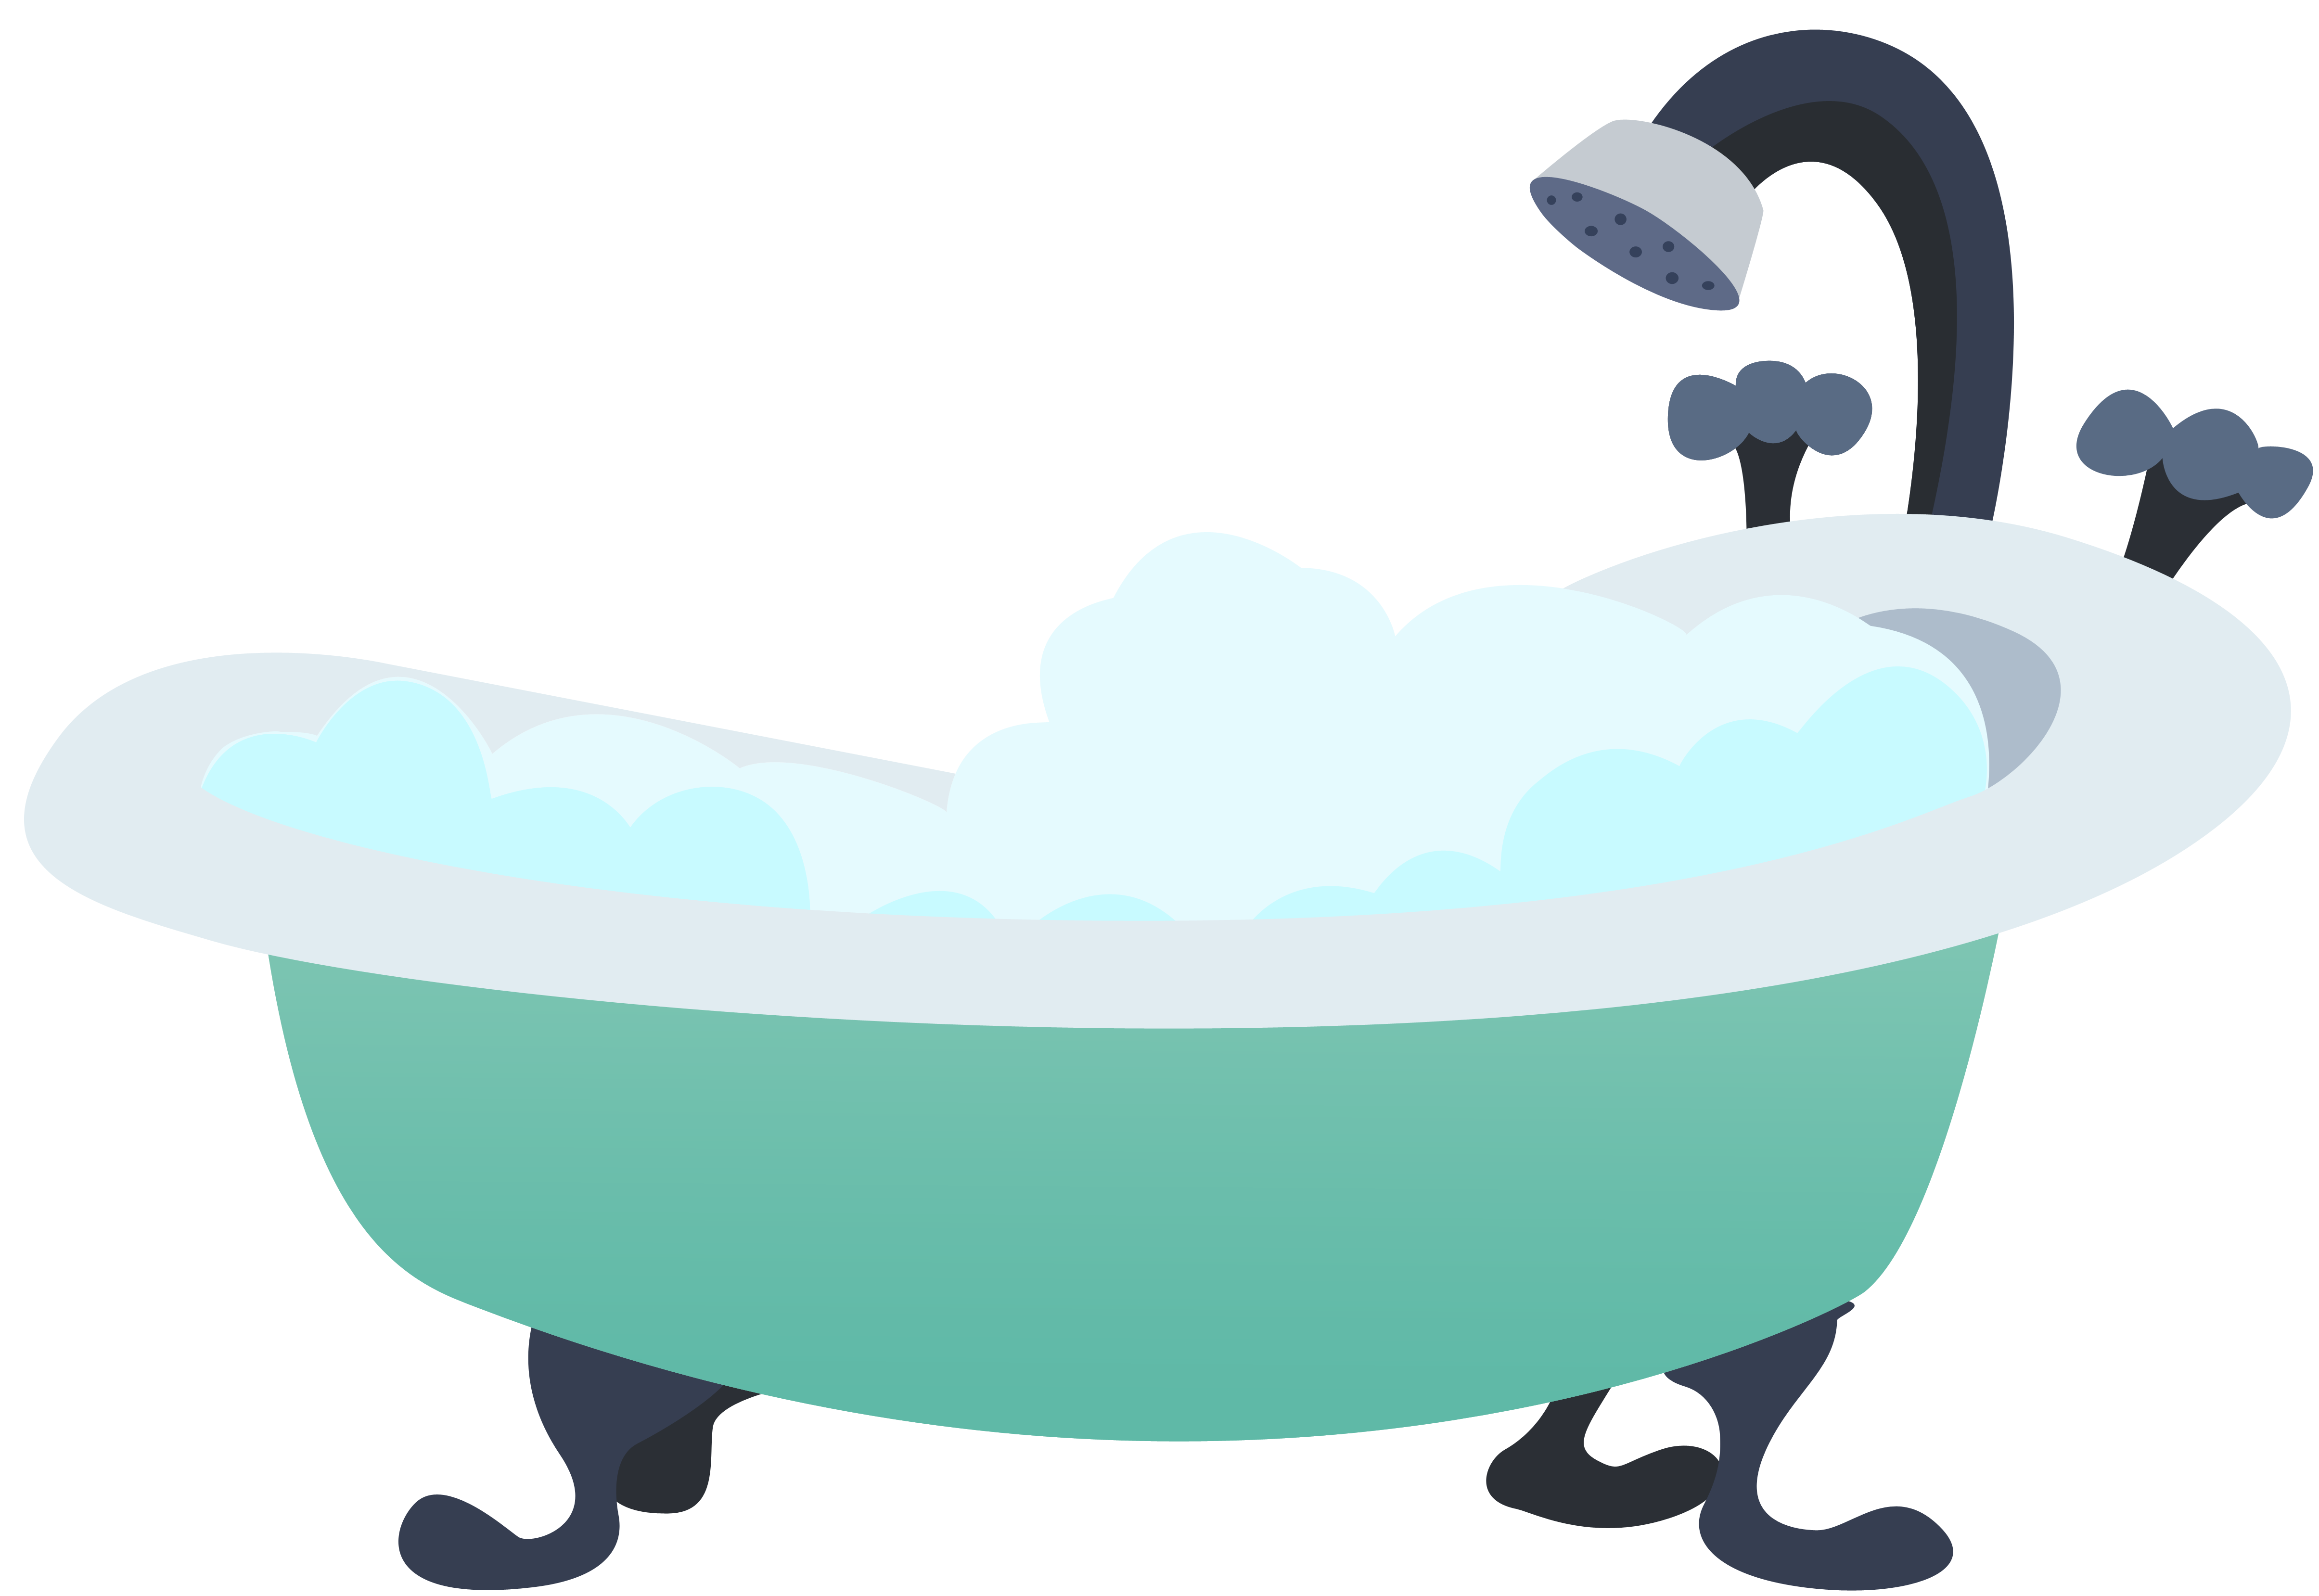 bathtub by kooner cz on deviantart